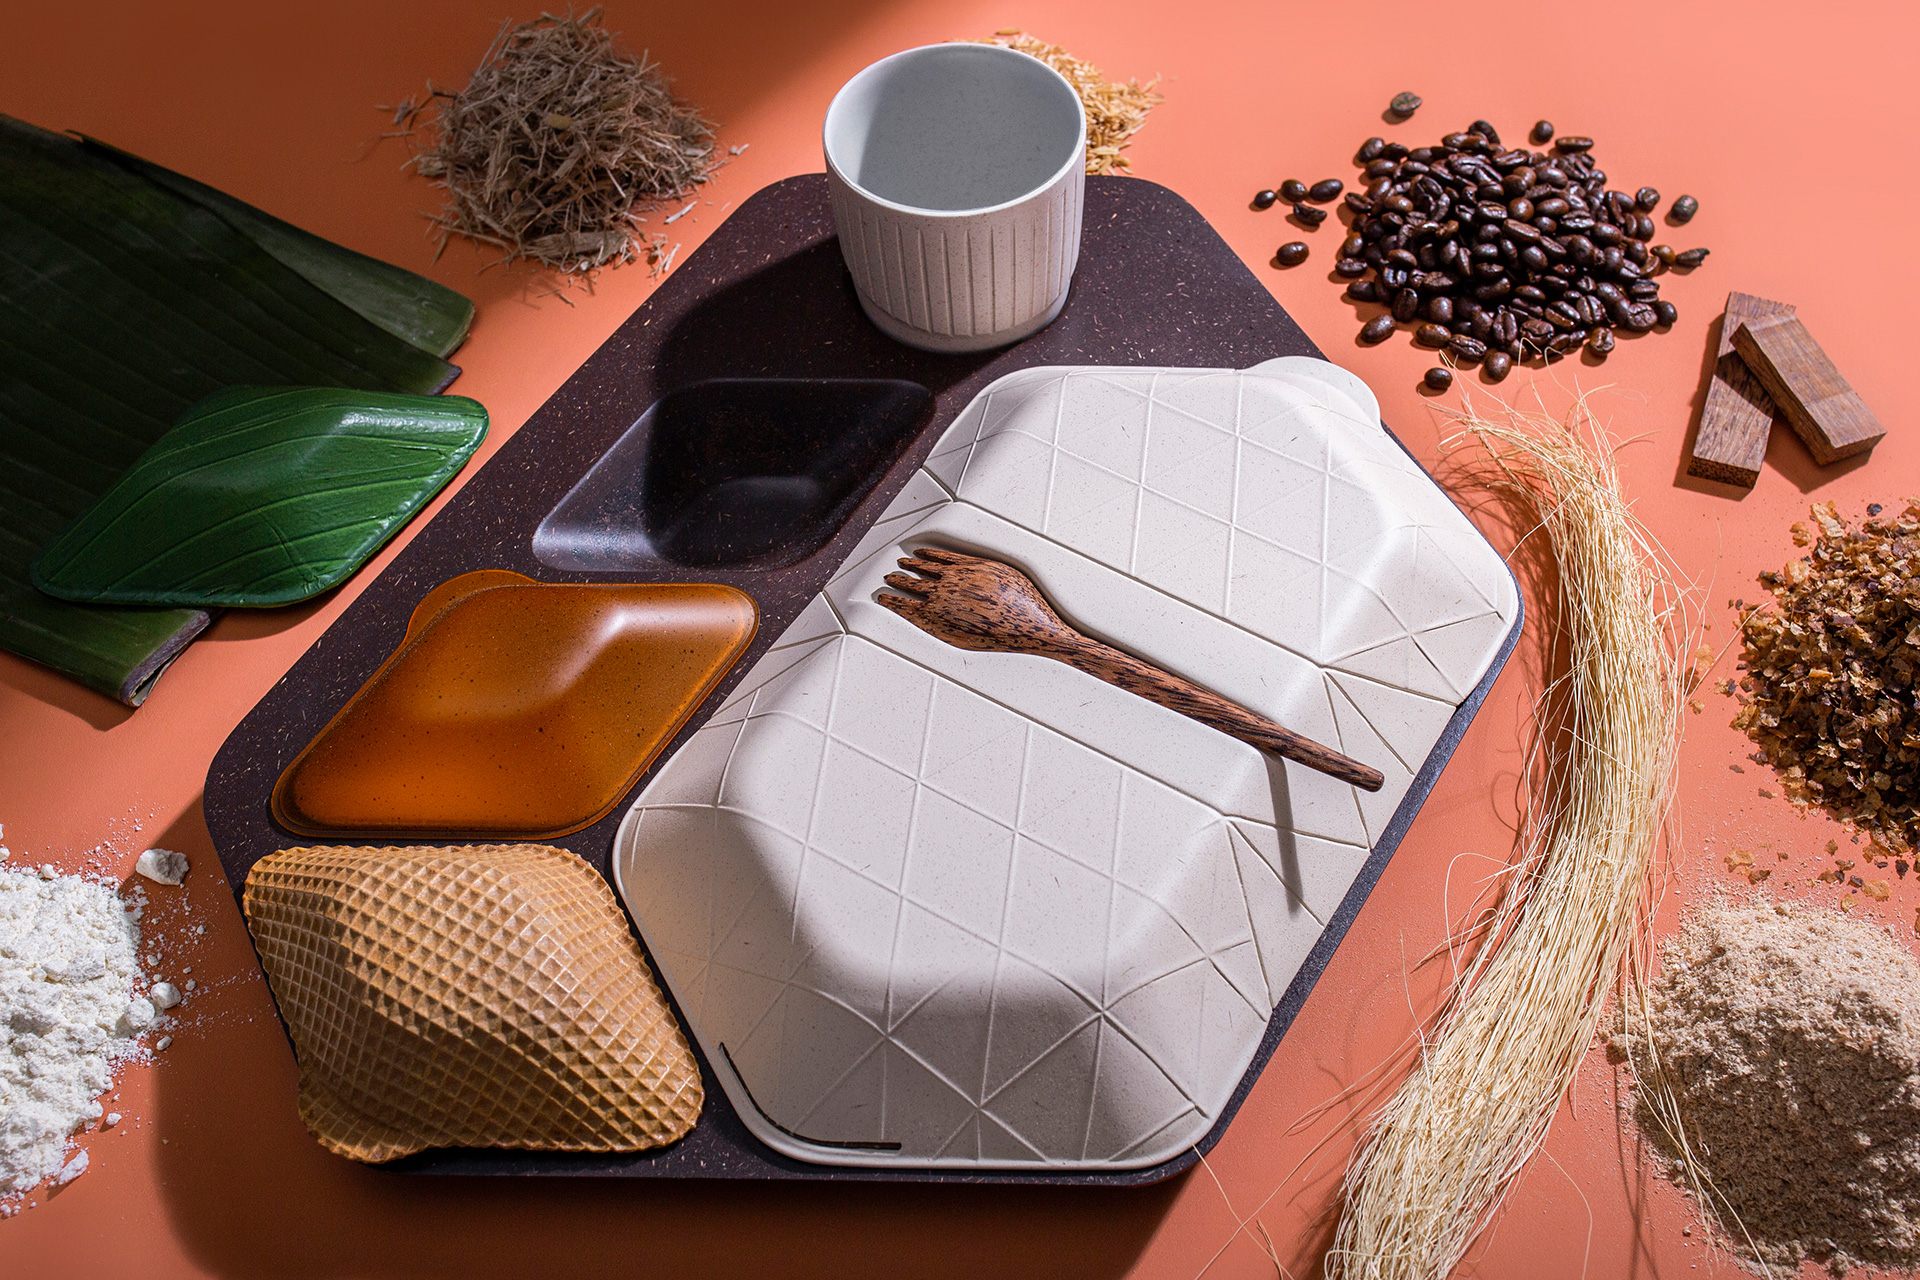 The meal tray has been designed with edible and commercially compostable materials | Paul Priestman | PriestmanGoode | STIRworld